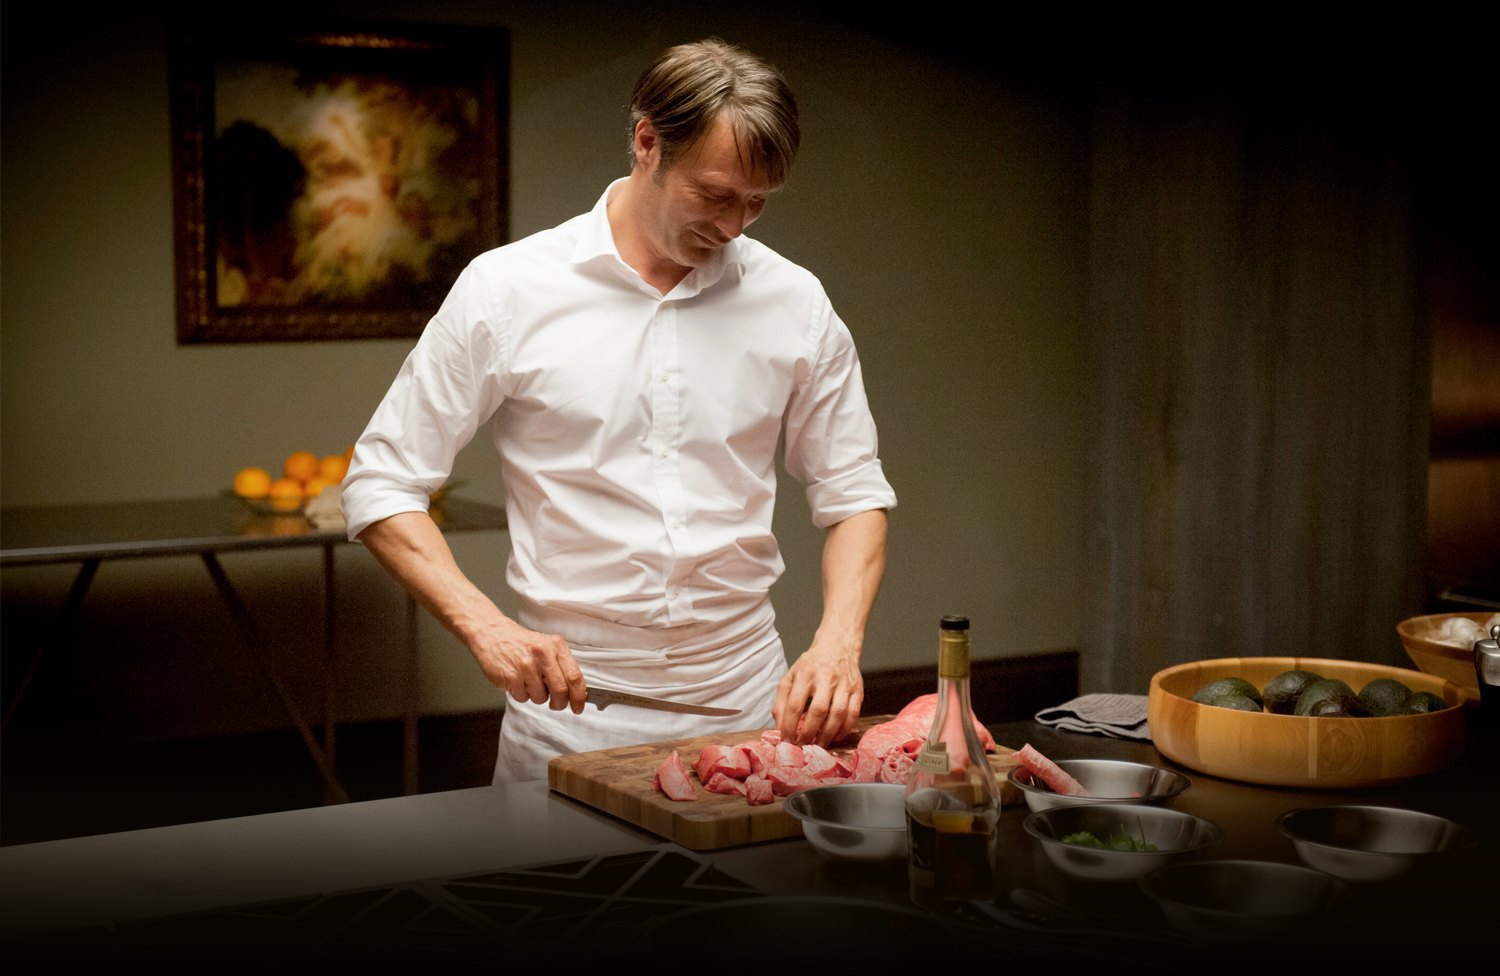 How Hannibal's food stylist creates hypothetical human meat. Image 4.